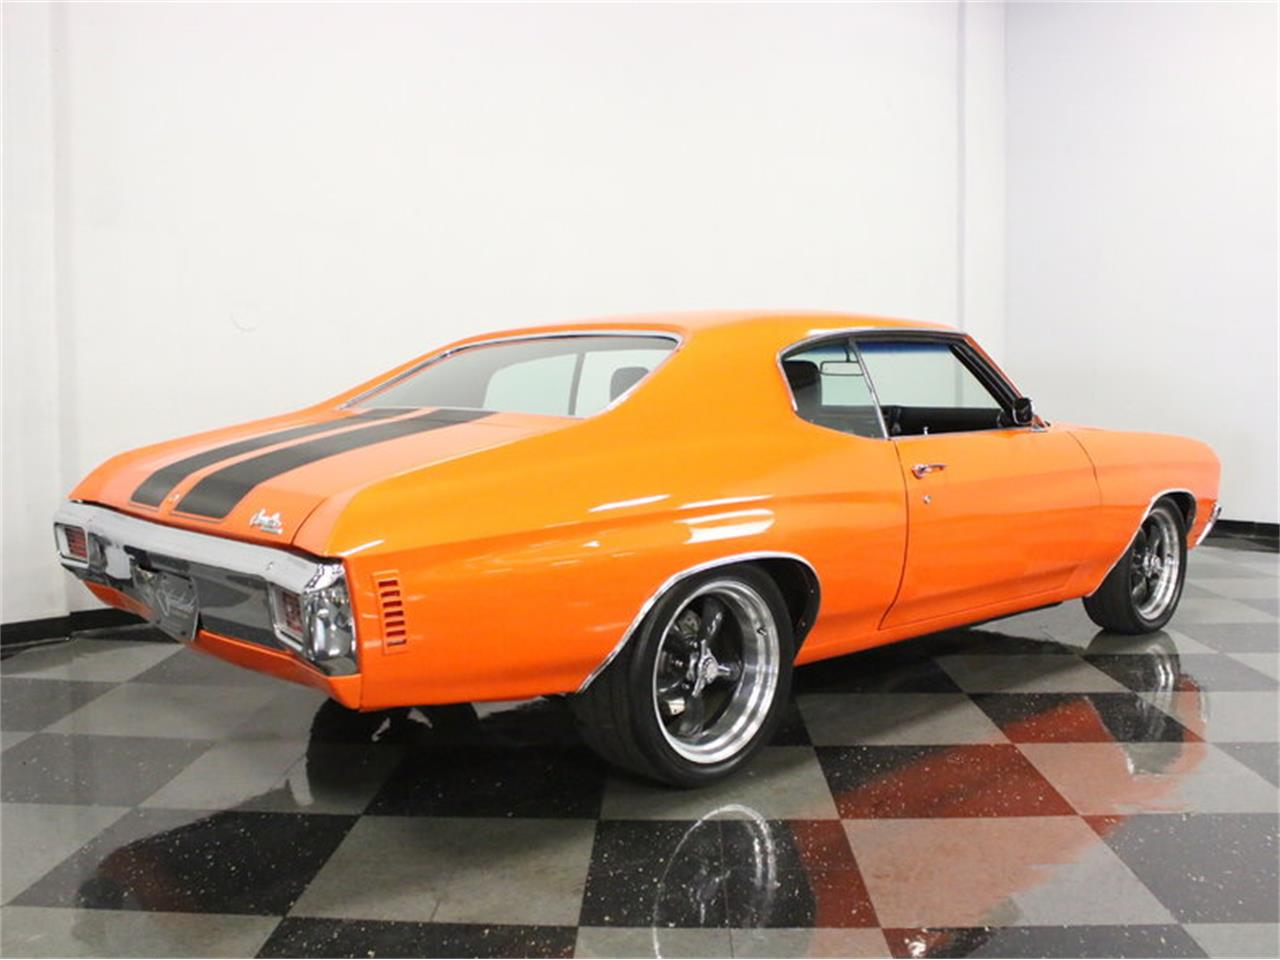 Large Picture of 1970 Chevrolet Chevelle SS Pro Touring located in Ft Worth Texas - $69,995.00 Offered by Streetside Classics - Dallas / Fort Worth - L8AH